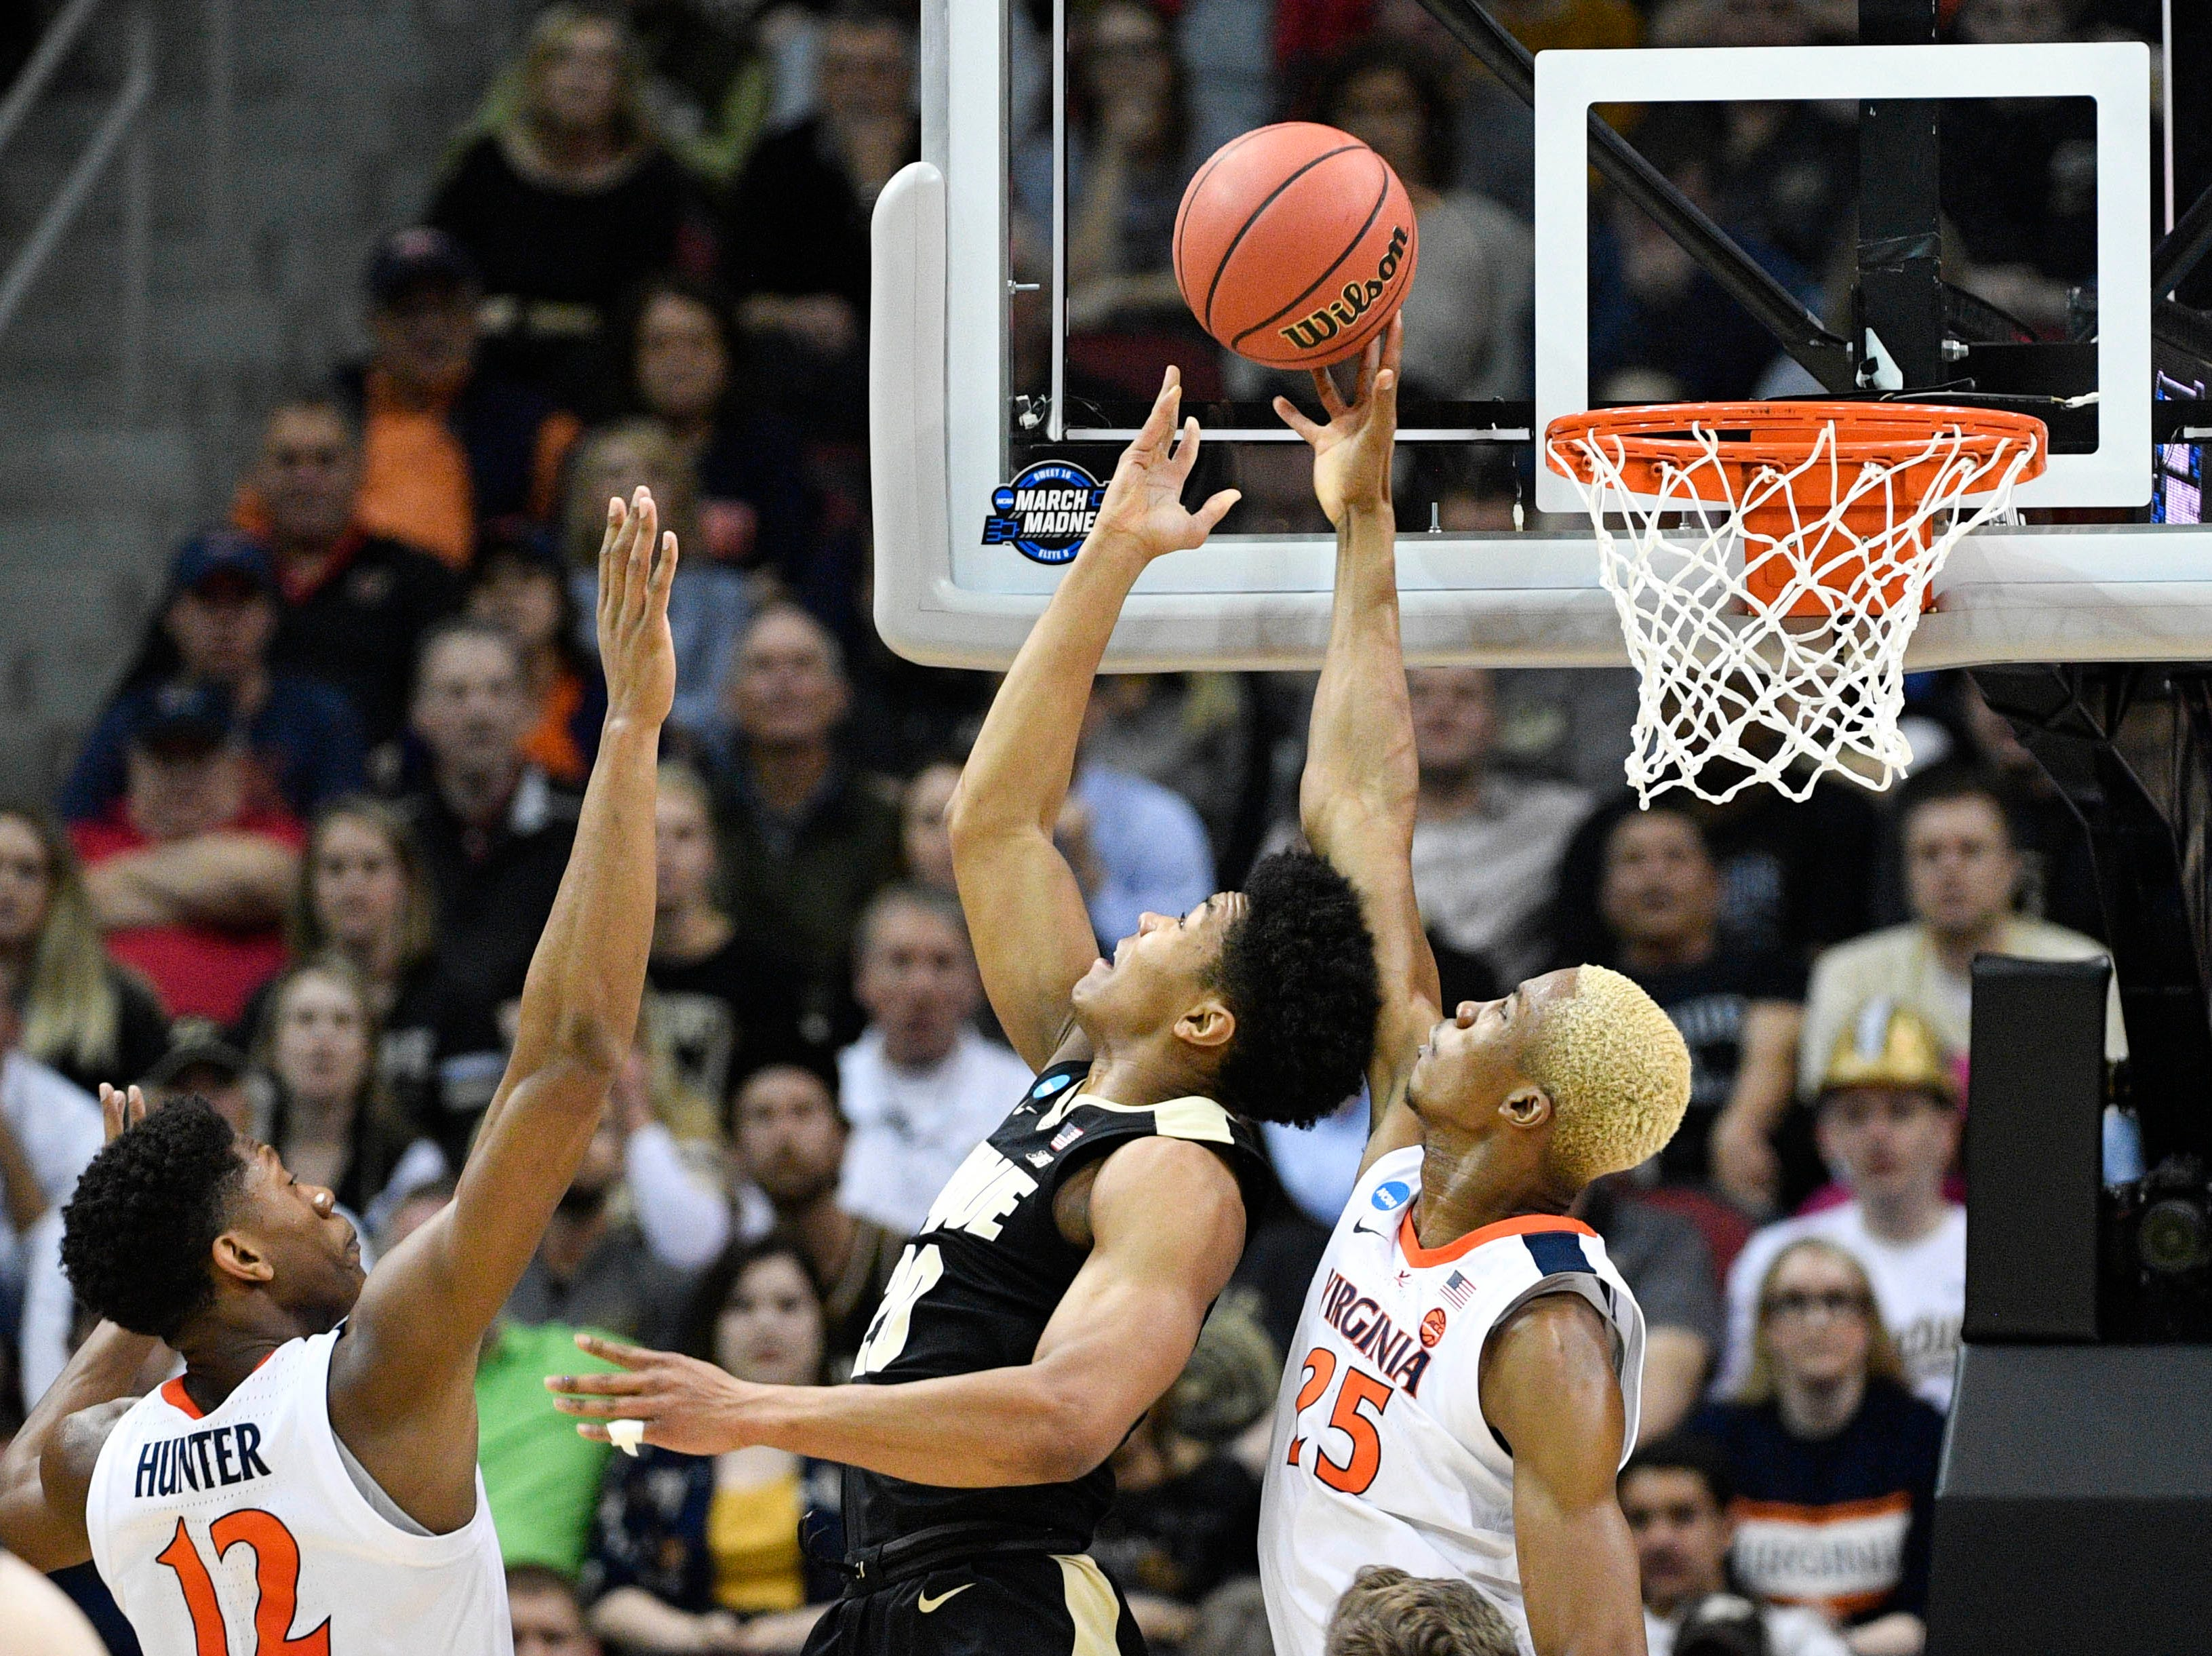 Mar 30, 2019; Louisville, KY, United States; Purdue Boilermakers guard Nojel Eastern (20) is defended by Virginia Cavaliers forward Mamadi Diakite (25) and guard De'Andre Hunter (12) during the first half in the championship game of the south regional of the 2019 NCAA Tournament at KFC Yum Center. Mandatory Credit: Jamie Rhodes-USA TODAY Sports